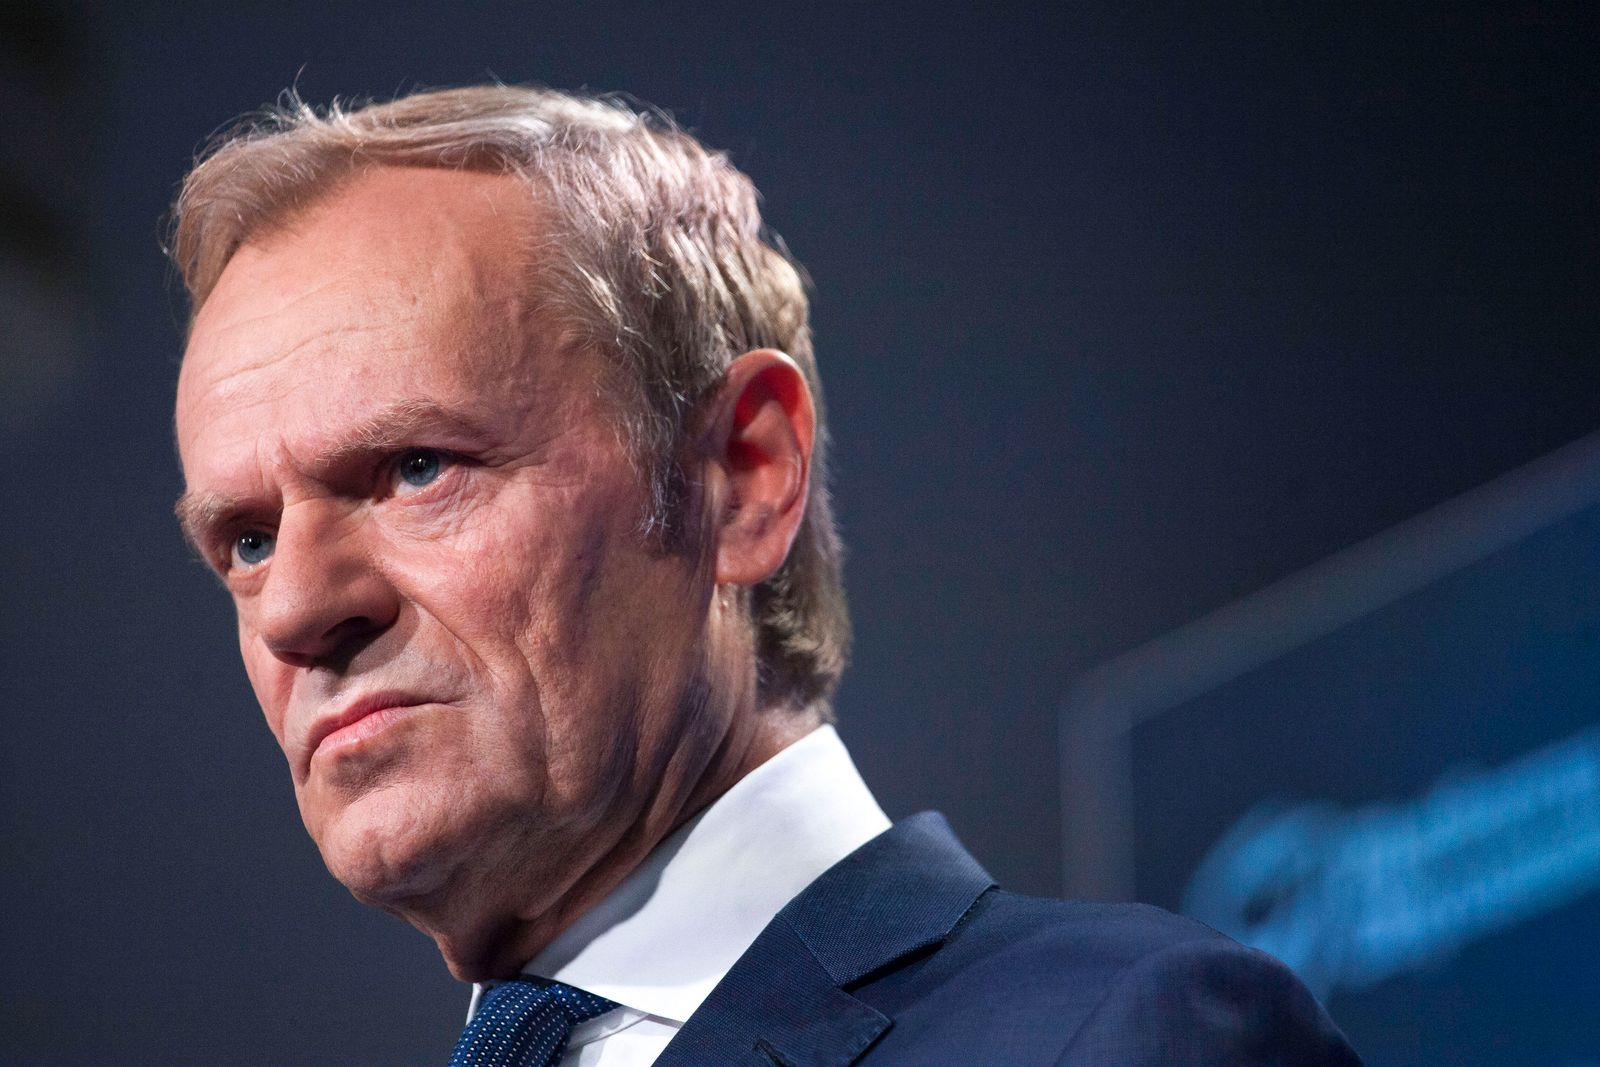 Conference Of Donald Tusk In Warsaw President of the European Peoples Party Donald Tusk seen in Warsaw on July 4, 2021.